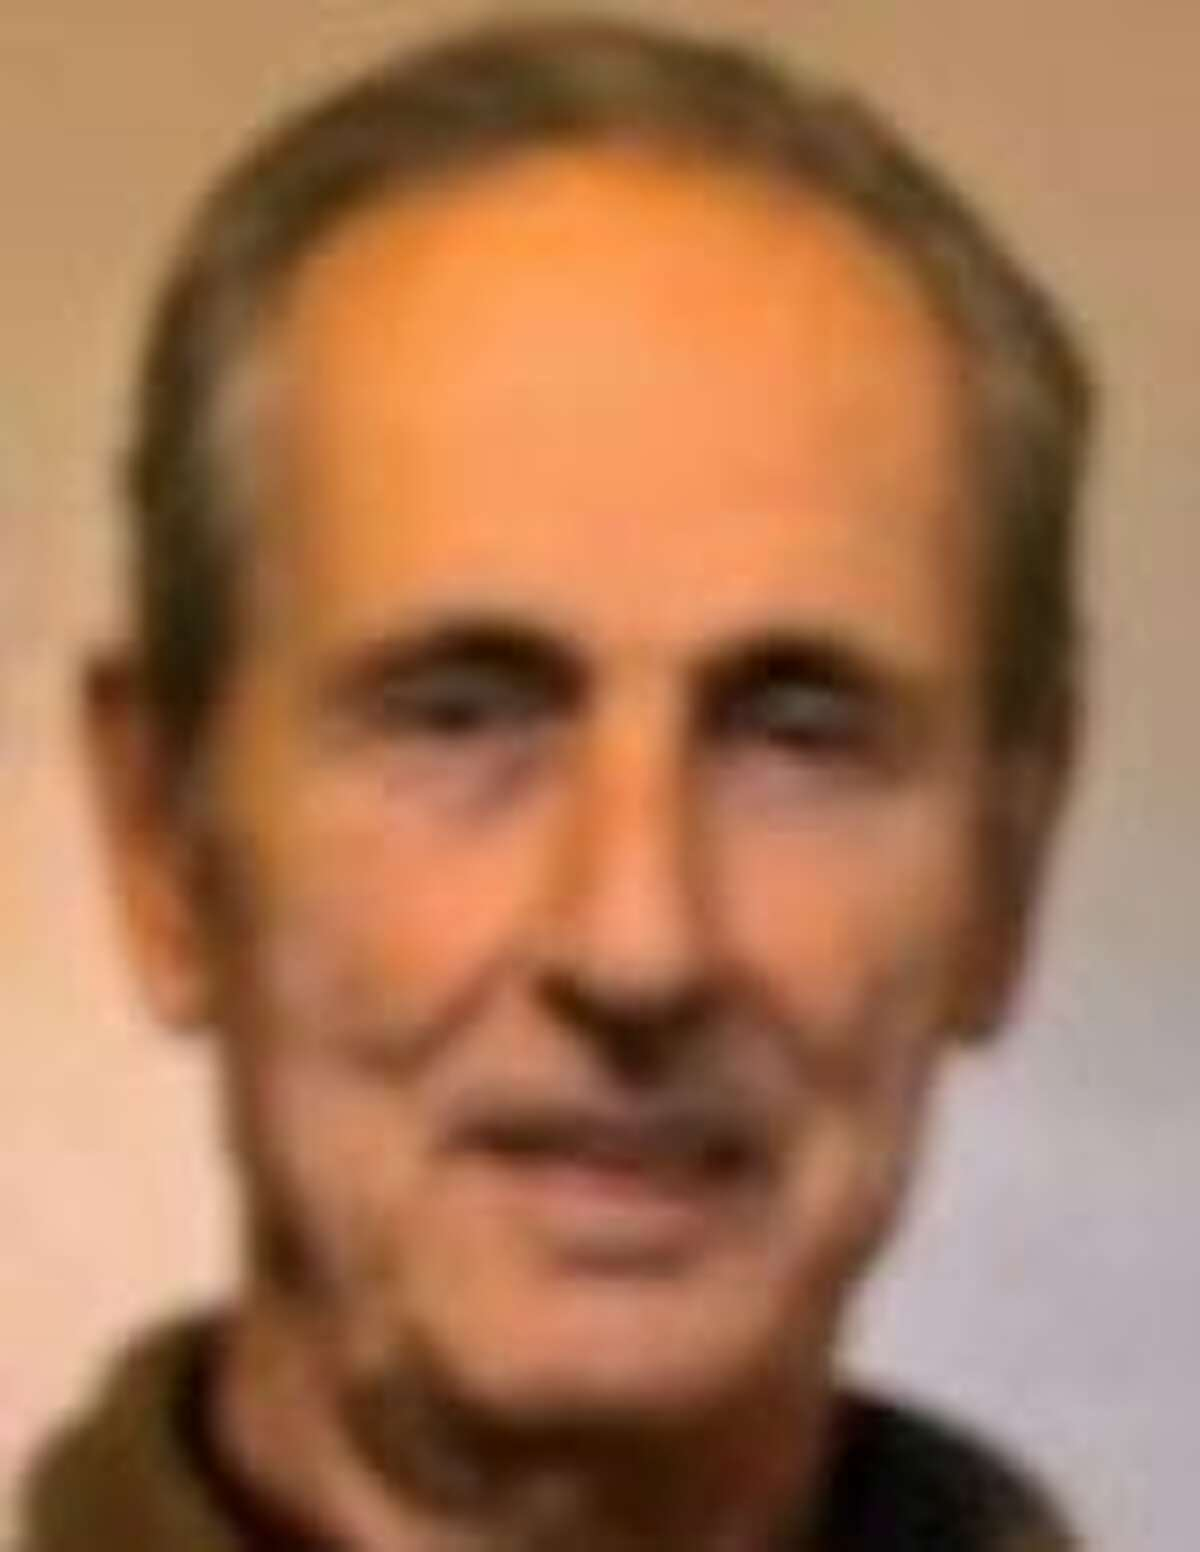 Guilderland police said Friday, June 26, 2020 taht  Russell Bedinotti, 77, has been found  after he went missing Wednesday.